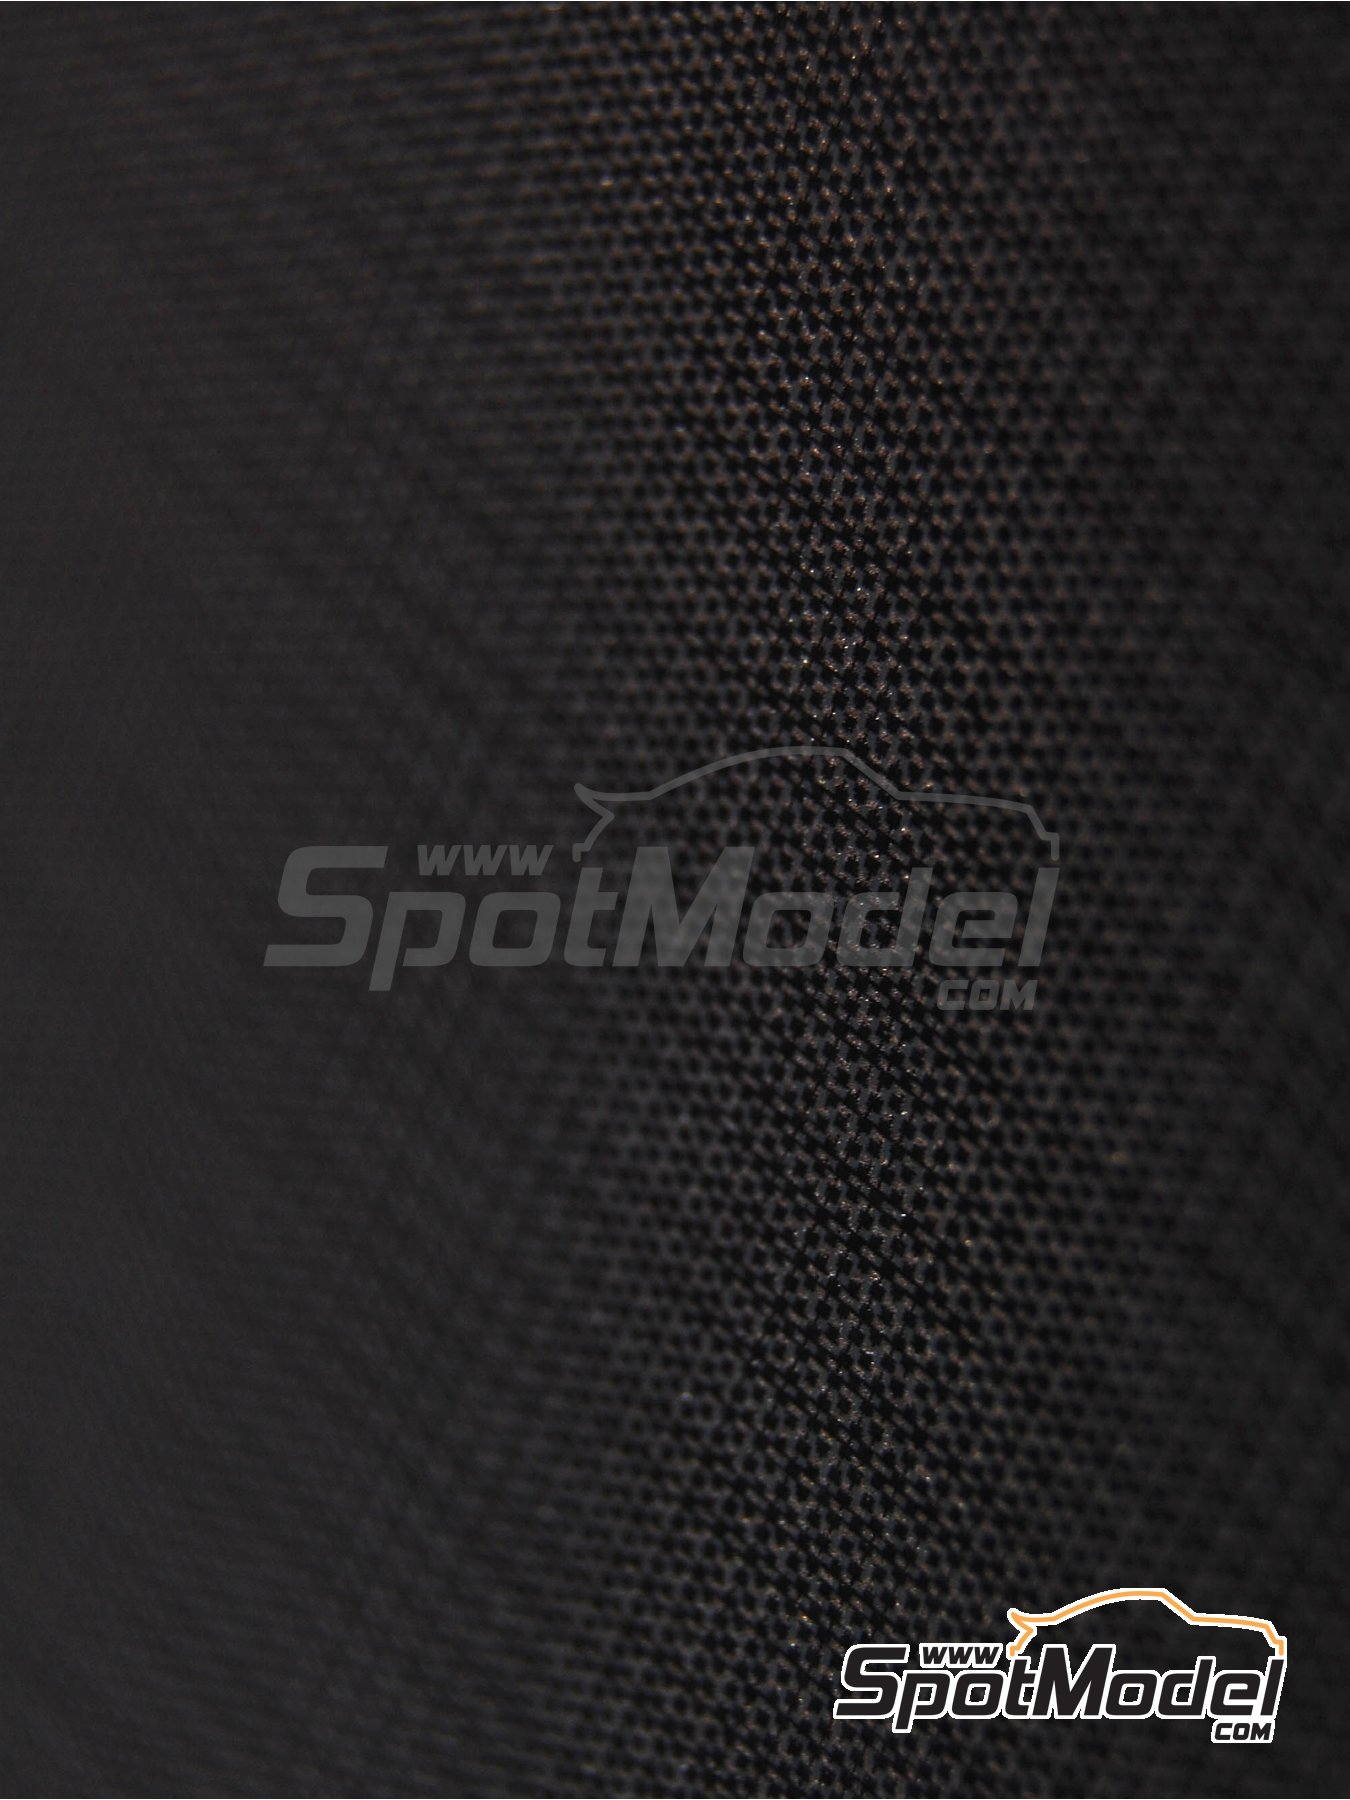 High definition medium sized plain weave carbon fiber patten in black and pewter | Decals in 1/24 scale manufactured by Scale Motorsport (ref. SM1524, also 1524) image